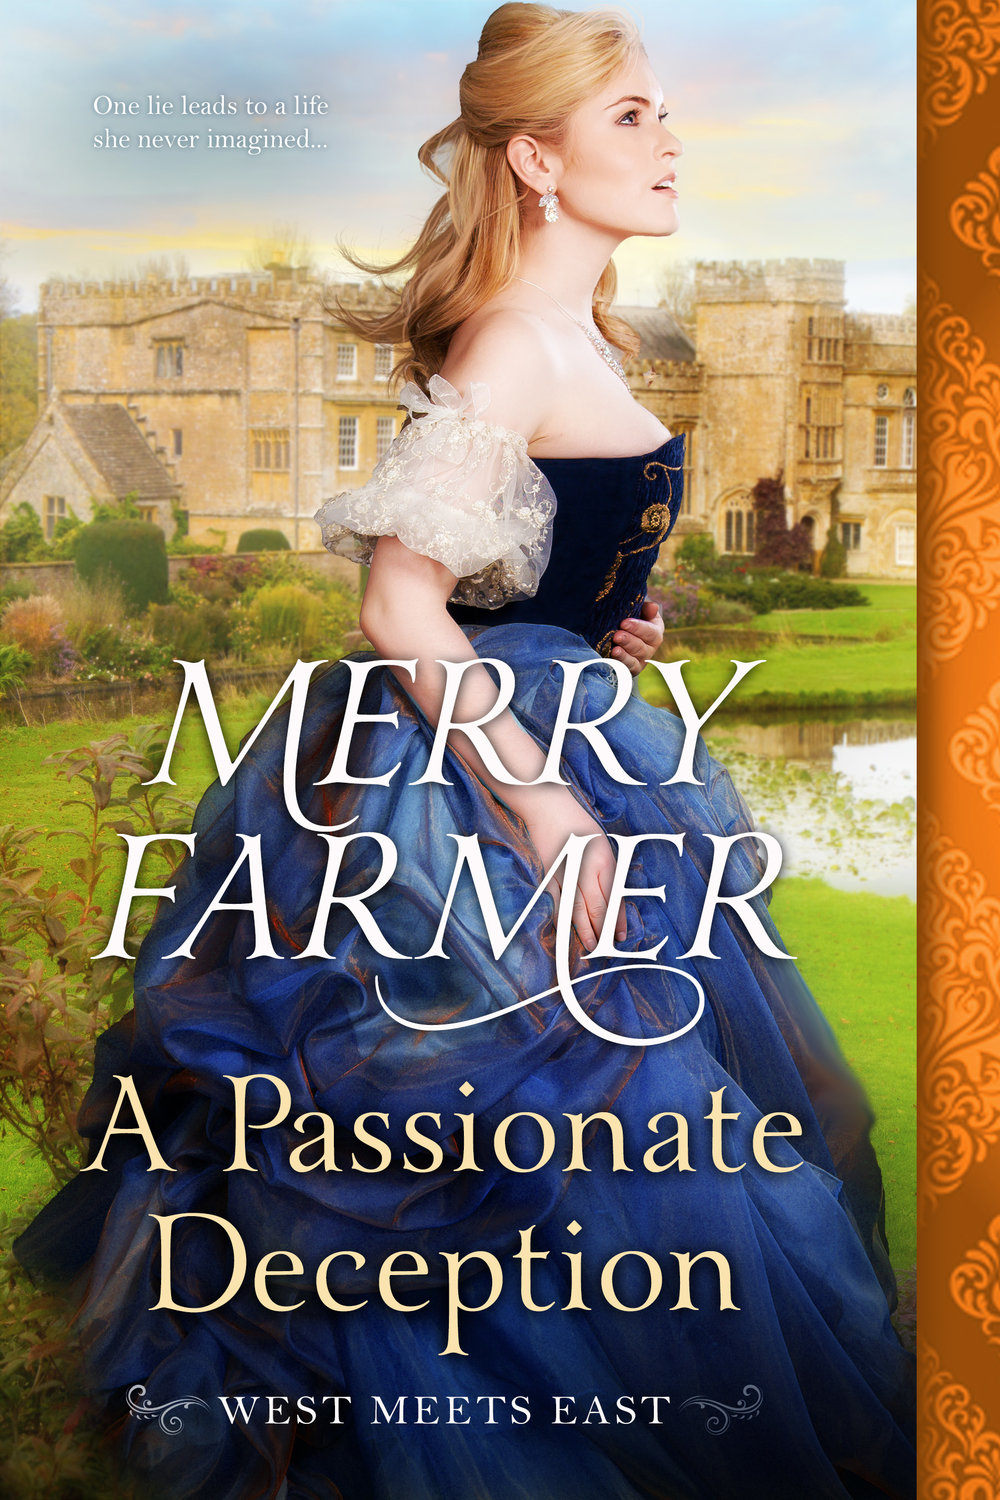 A Passionate Deception (Book 5) - Ellie Braun is on her way from the Old West to England to start a new life as lady's maid to American heiress Helena Mortimer. But when Helena runs off with one of the porters from the ship as soon as they dock in London, it's up to Ellie to smooth things over with Lord Henry Howsden, Helena's fiancé. But instead of being disappointed, Lord Henry concocts a plan for Ellie to impersonate Helena in order to fool his family. A former soiled dove pretending to be a wealthy heiress in the household of a marquis? What could go wrong?Henry Howsden has resented his father's attempts to sell him in marriage to a woman he's never seen from day one. By introducing Ellie to his family as Miss Mortimer, letting them fall in love with her, then revealing her true identity, he intends to prove to them that common people have worth, and that marriage is not a game. But almost from the start, he falls in love with the beautiful, clever, and free-spirited Ellie. She is everything that he has never been permitted to be, and all too soon he can't imagine a life without her. But the gulf between an ex-prostitute and a British nobleman is an enormous one, and the passion that develops between Ellie and Henry may prove to be as impossible as it is undeniable.PLEASE BE ADVISED: Steam level – HOT